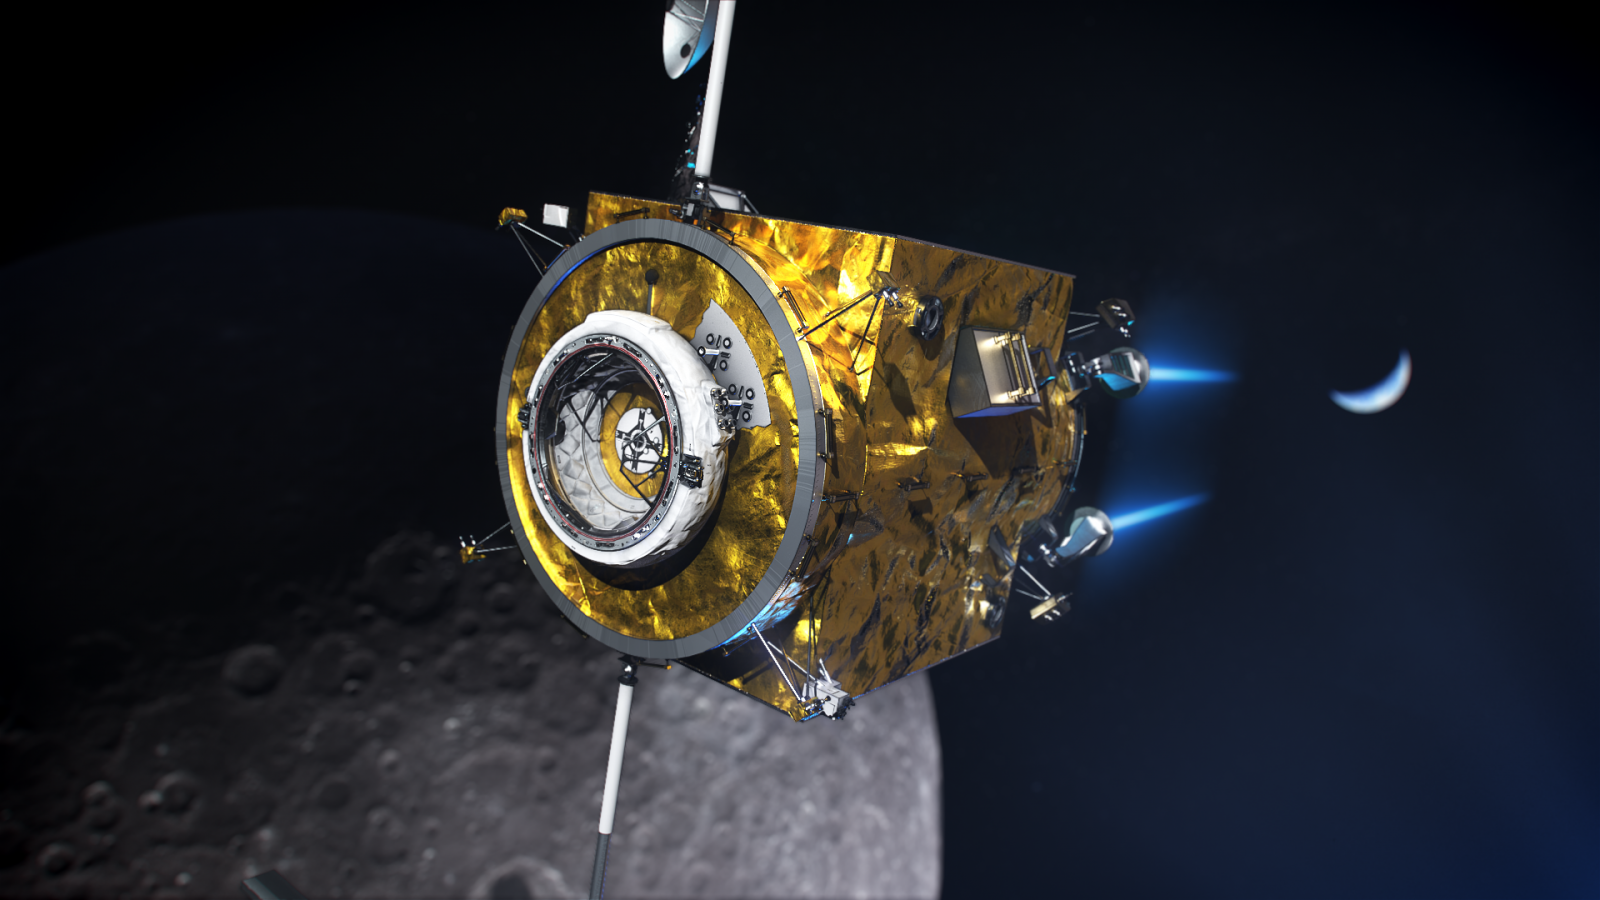 A rendering of the power and propulsion element with an international docking standard adapter attached. This week, NASA selected Maxar Technologies to build and fly the PPE by 2022. Image Credit: NASA